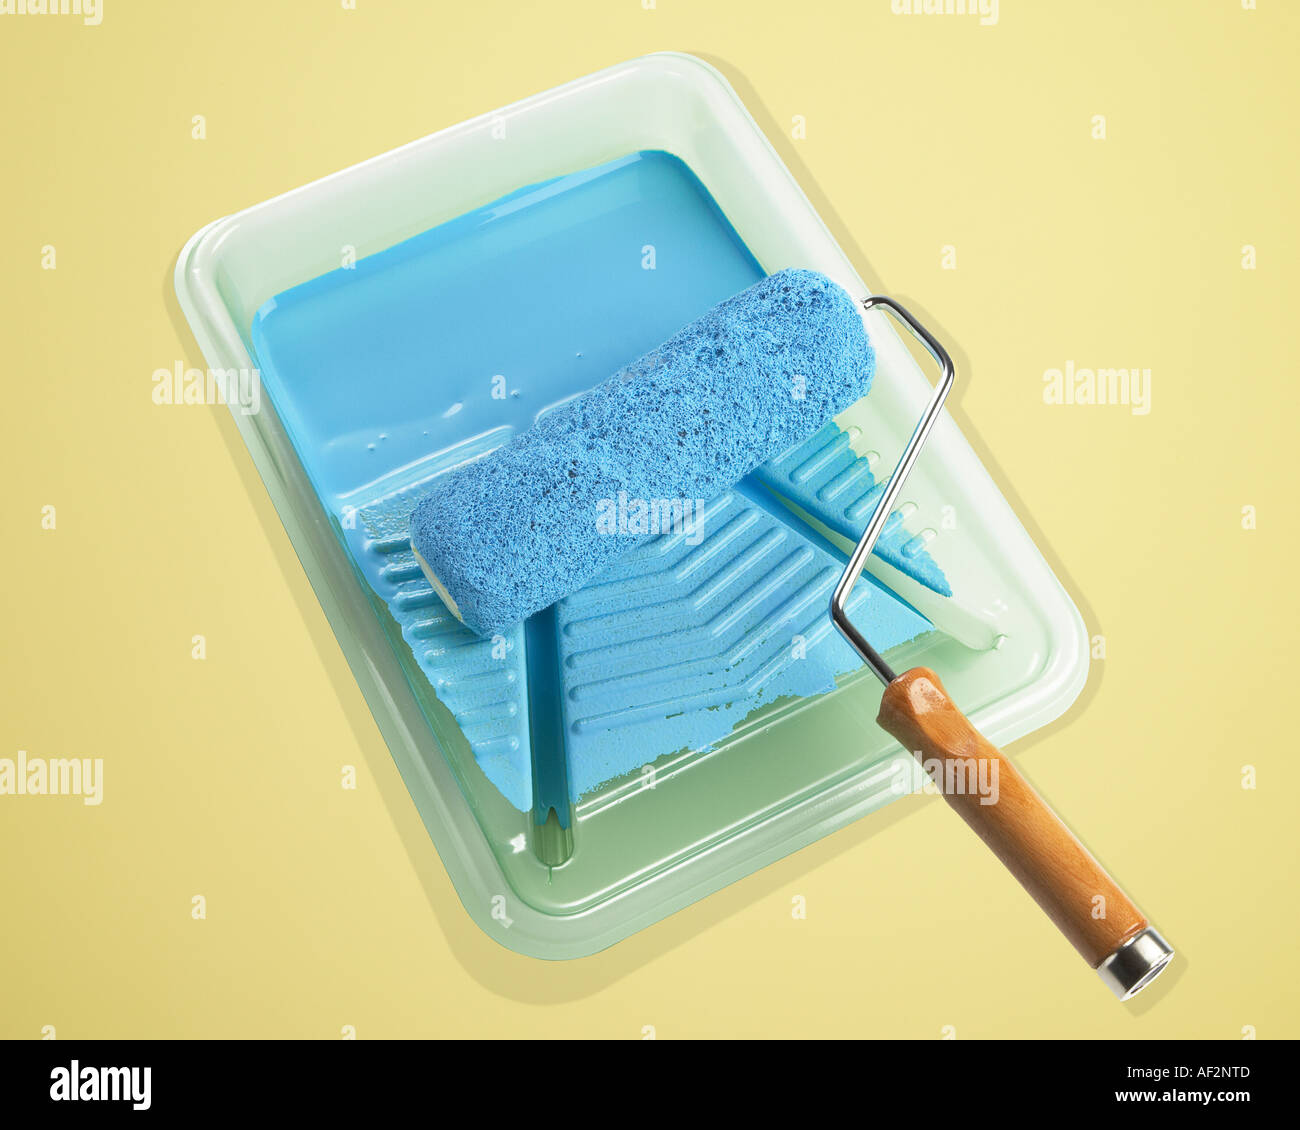 Red Rocket Stock Paint with roller in tray on color background with clipping path - Stock Image